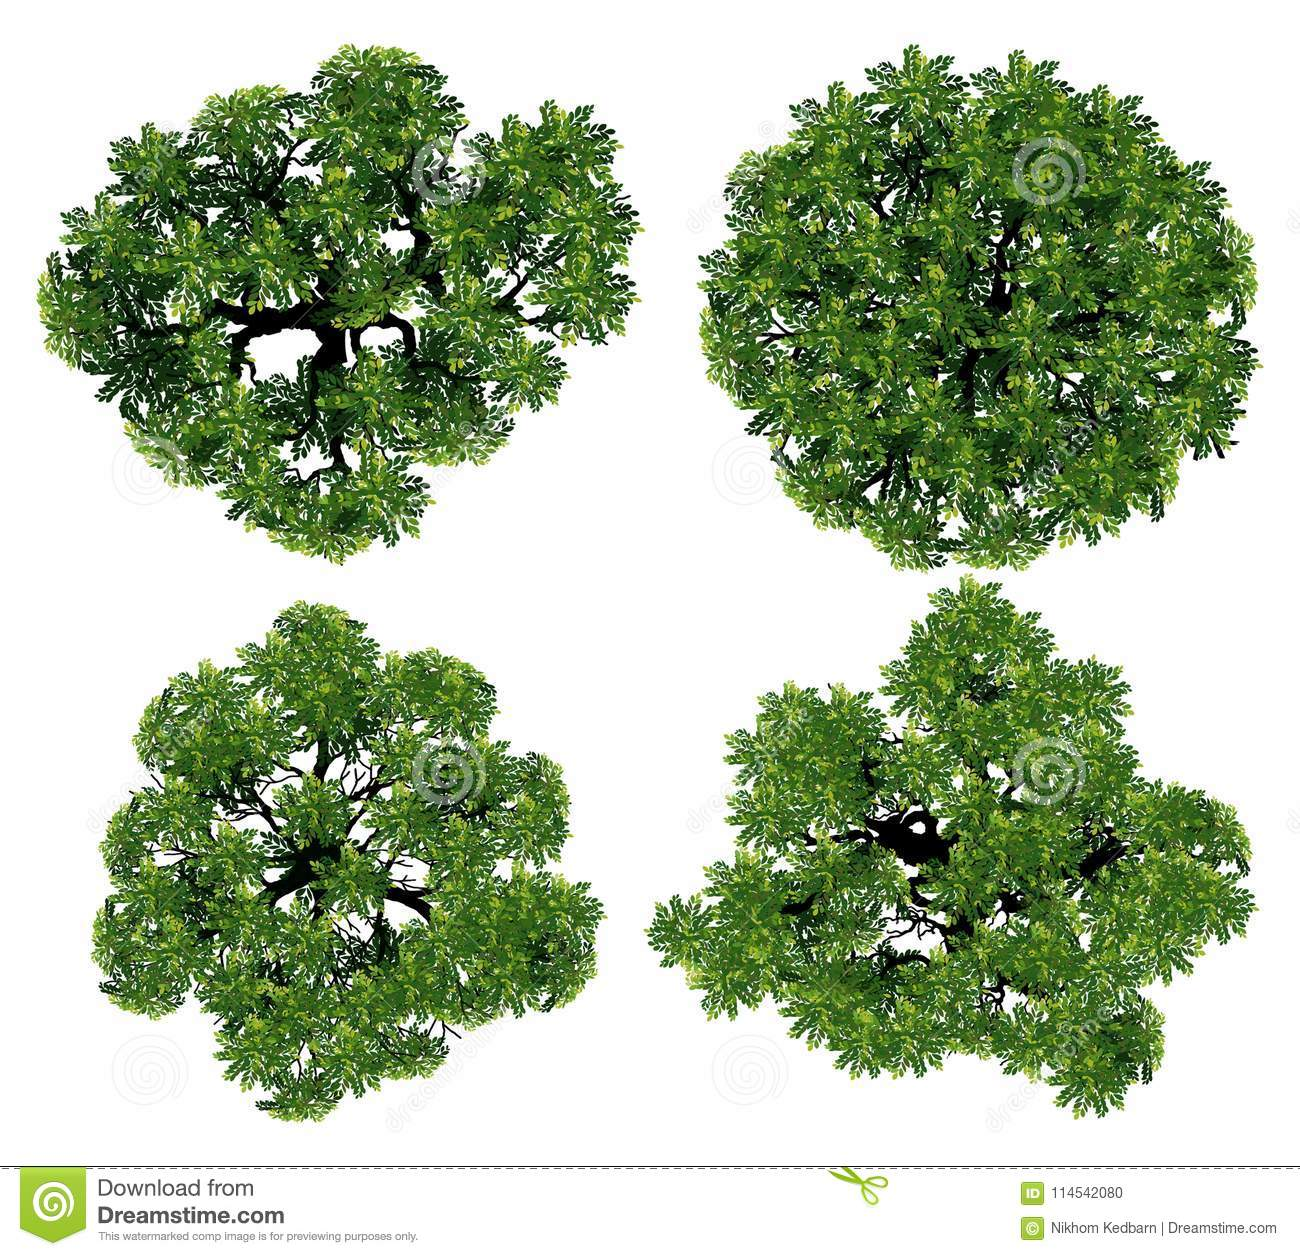 Trees Top View For Landscape Vector Illustration. Stock ...